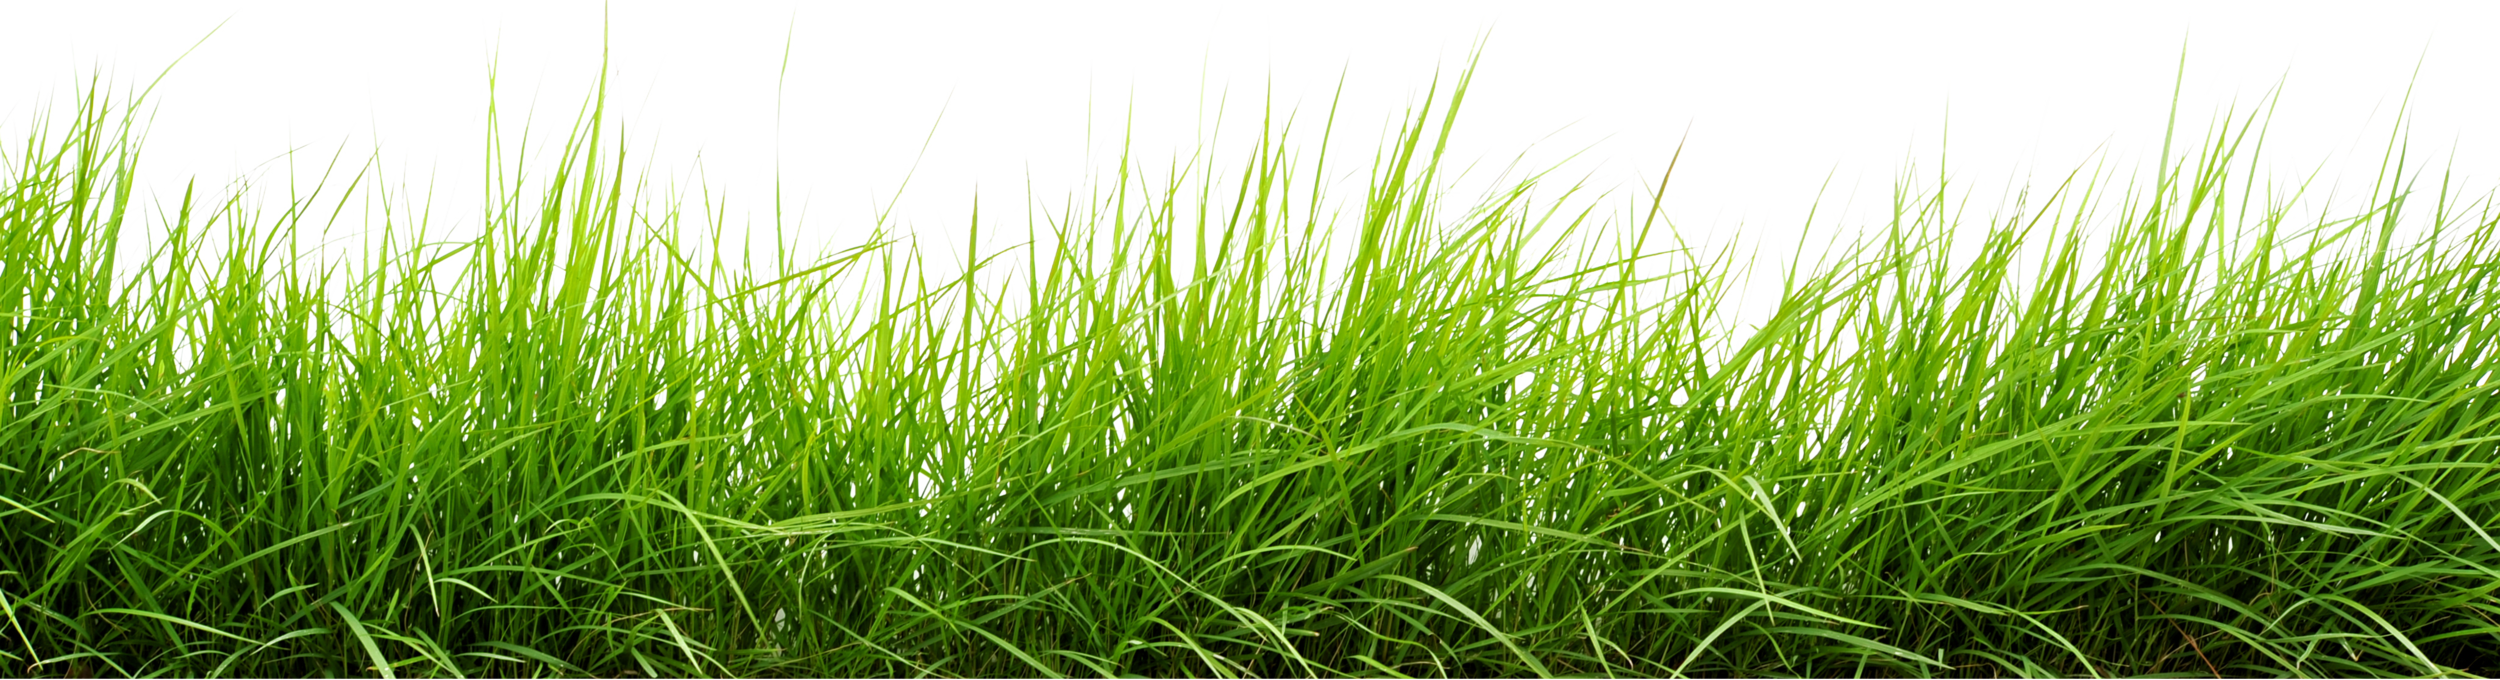 Green-Grass-17.png (2500×680) - Grasses PNG HD